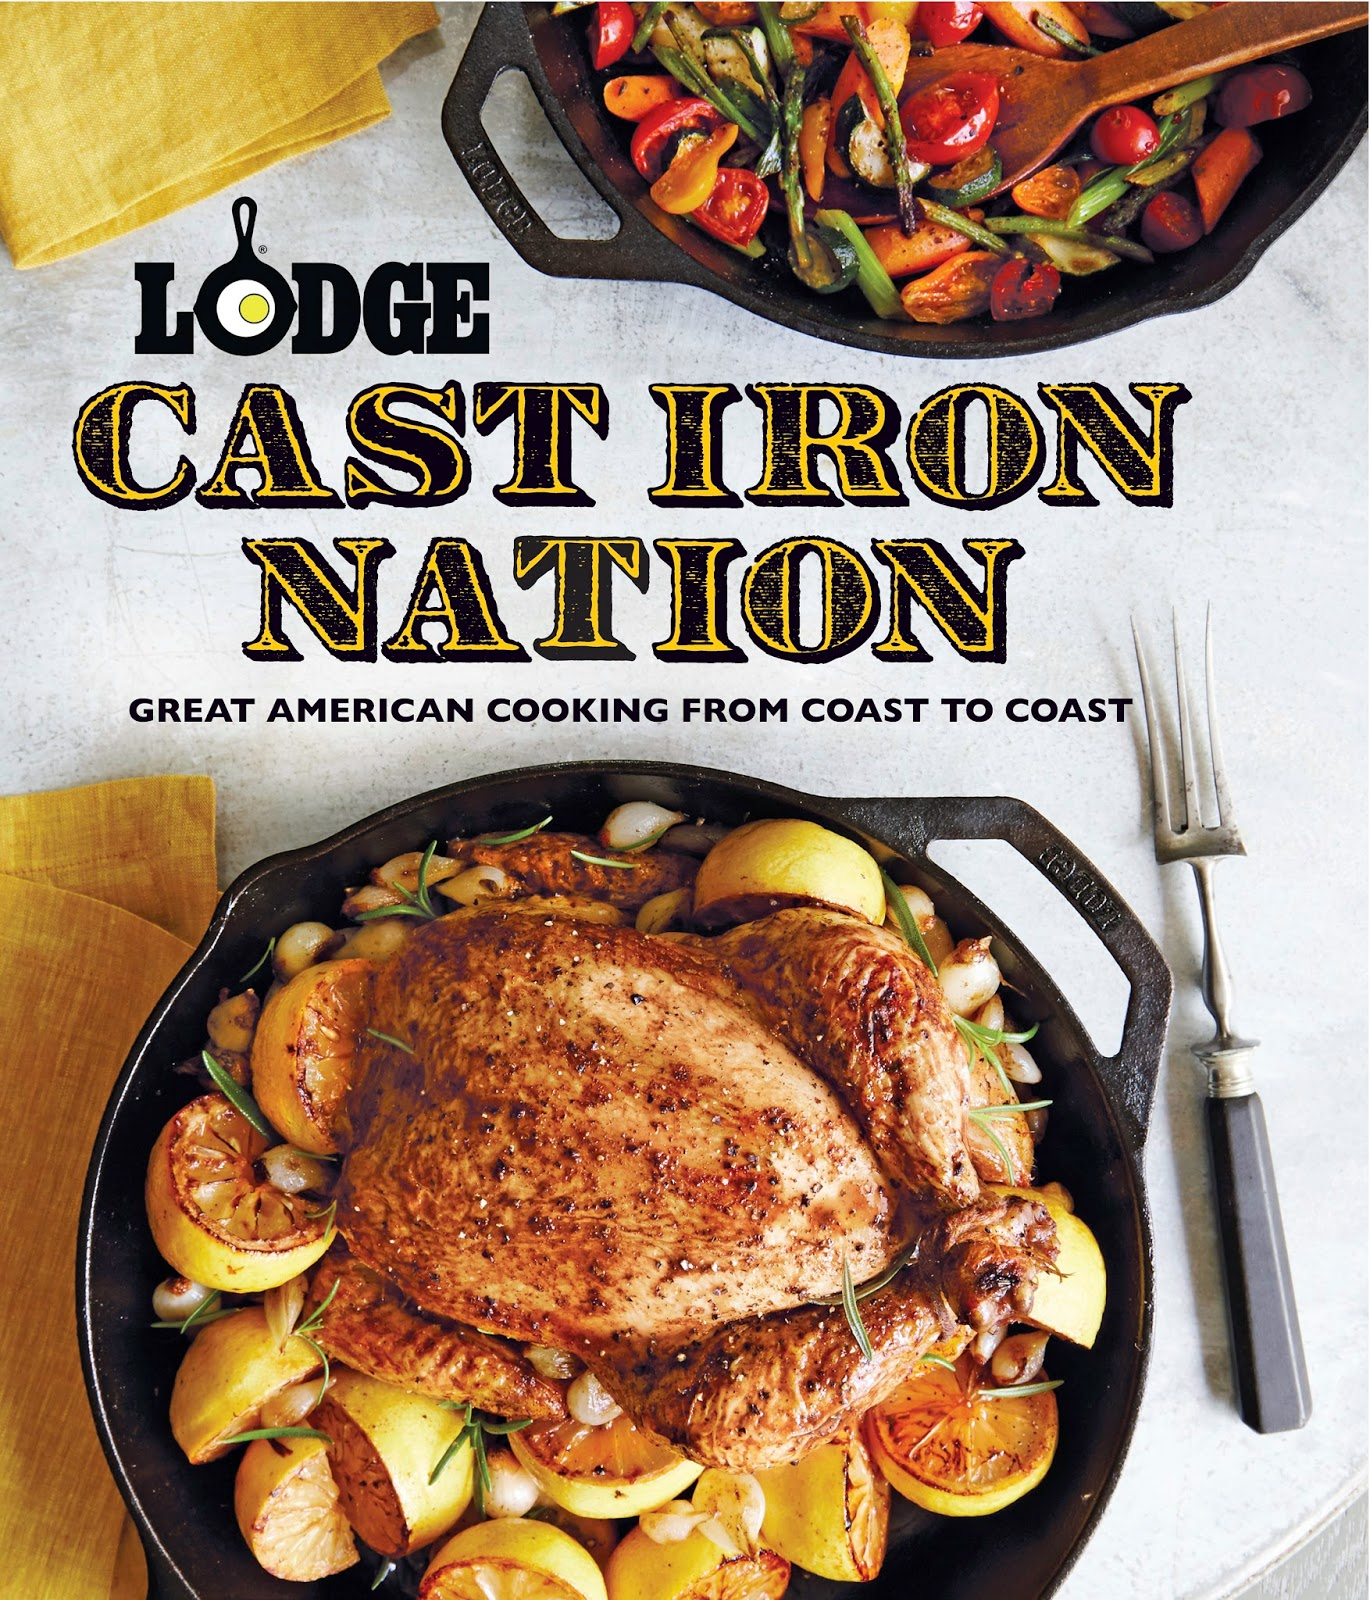 http://www.amazon.com/Lodge-Cast-Iron-Nation-American/dp/0848742265/ref=tmm_pap_title_0?ie=UTF8&qid=1397040922&sr=8-1